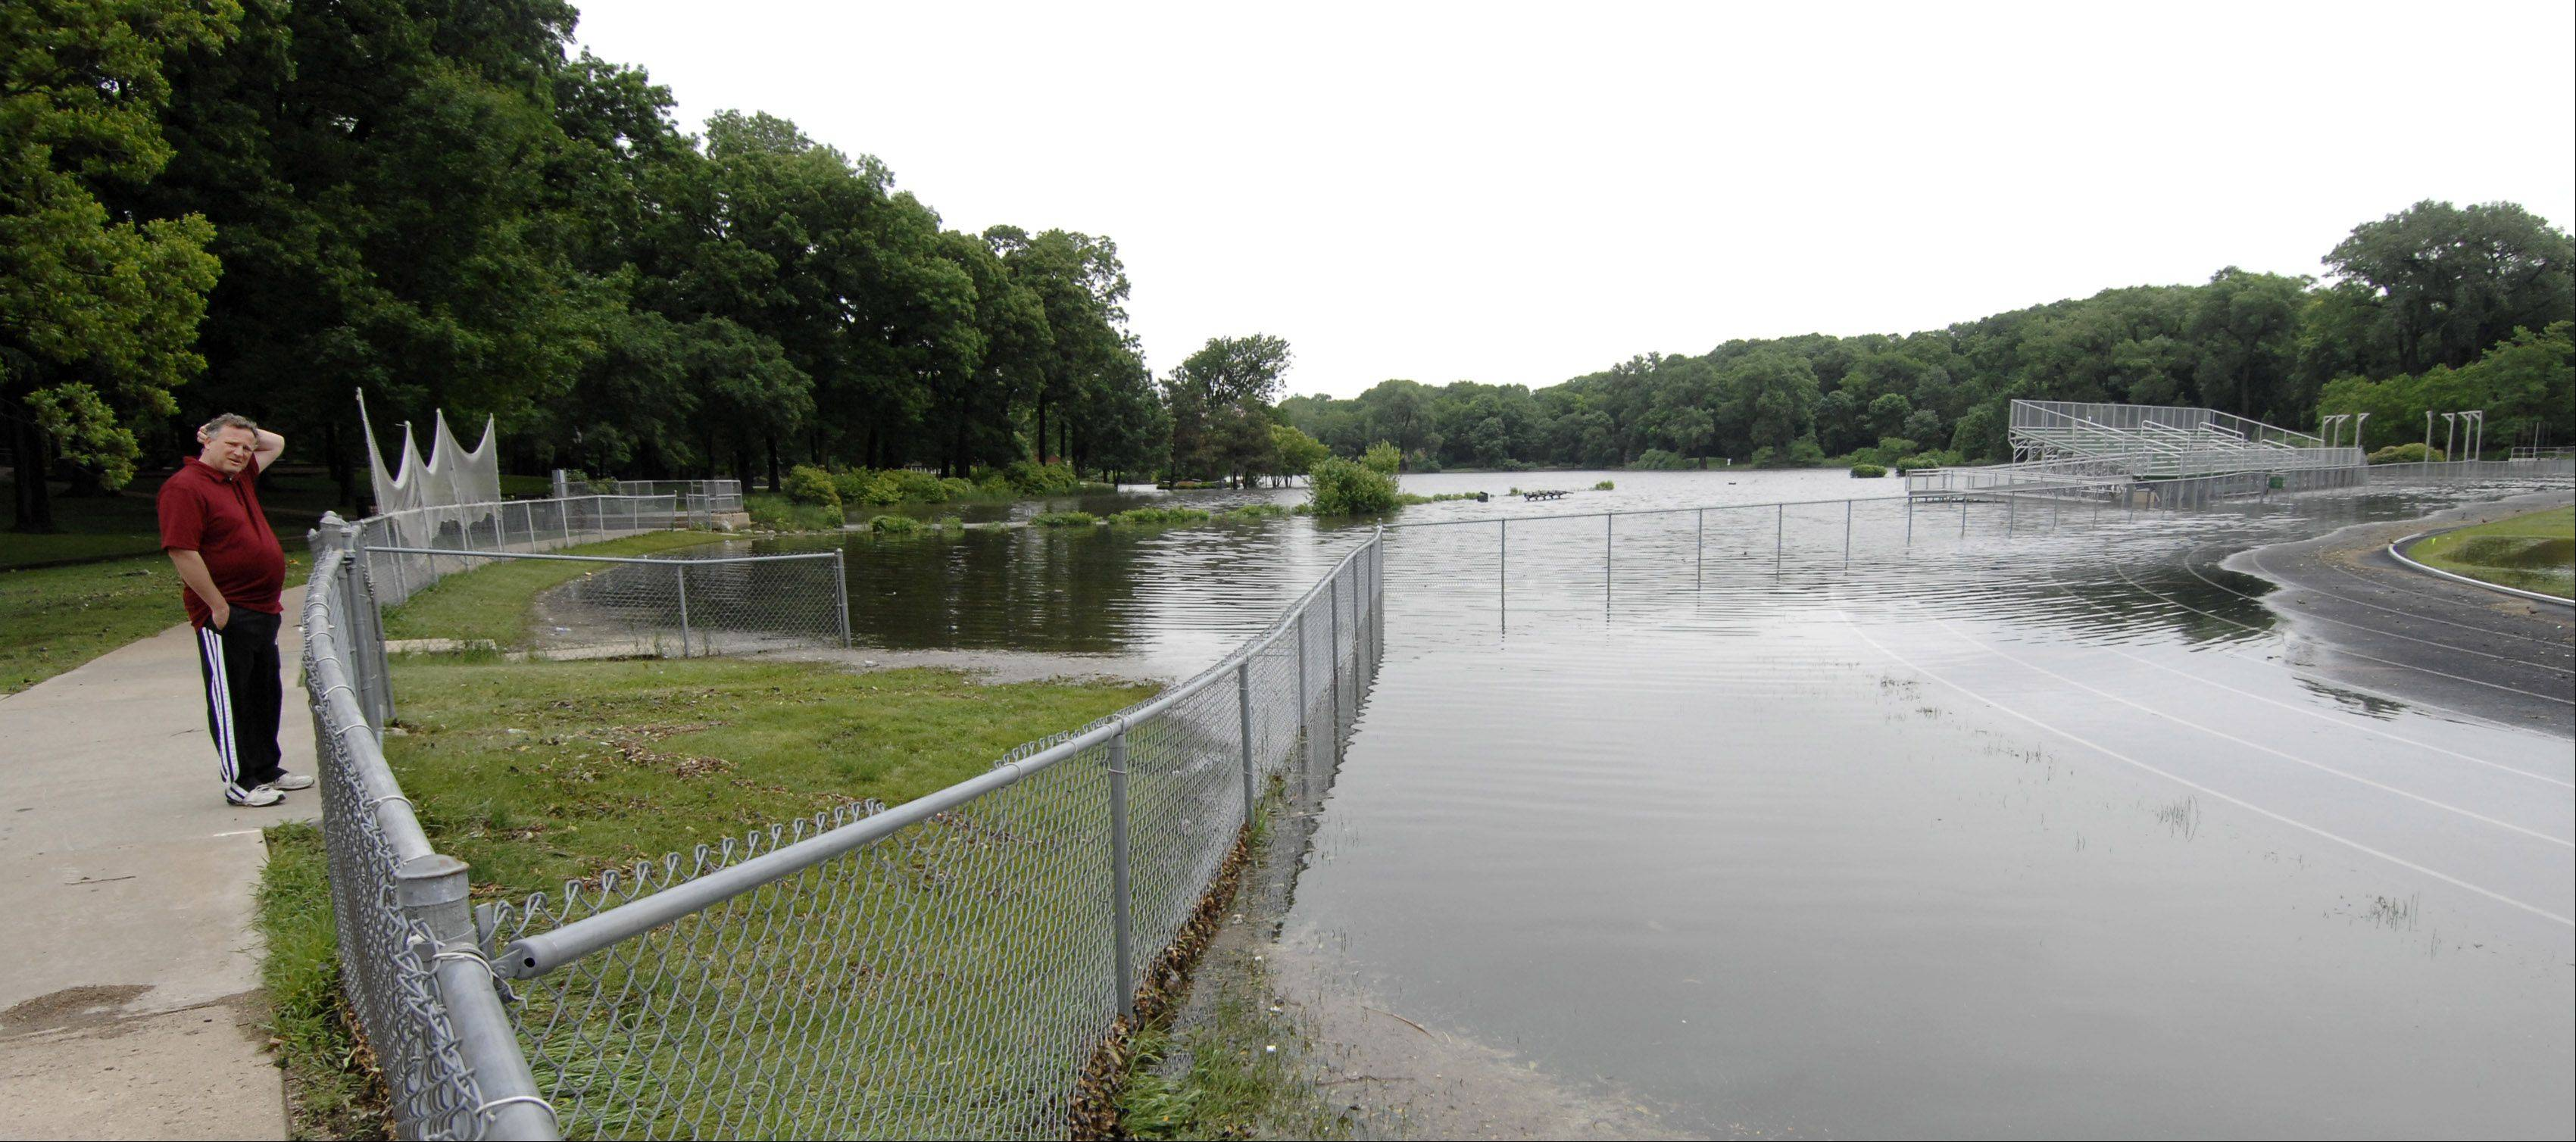 Glen Ellyn village and park district officials will split the cost of a study to determine why Lake Ellyn sometimes overflows and how to prevent it.